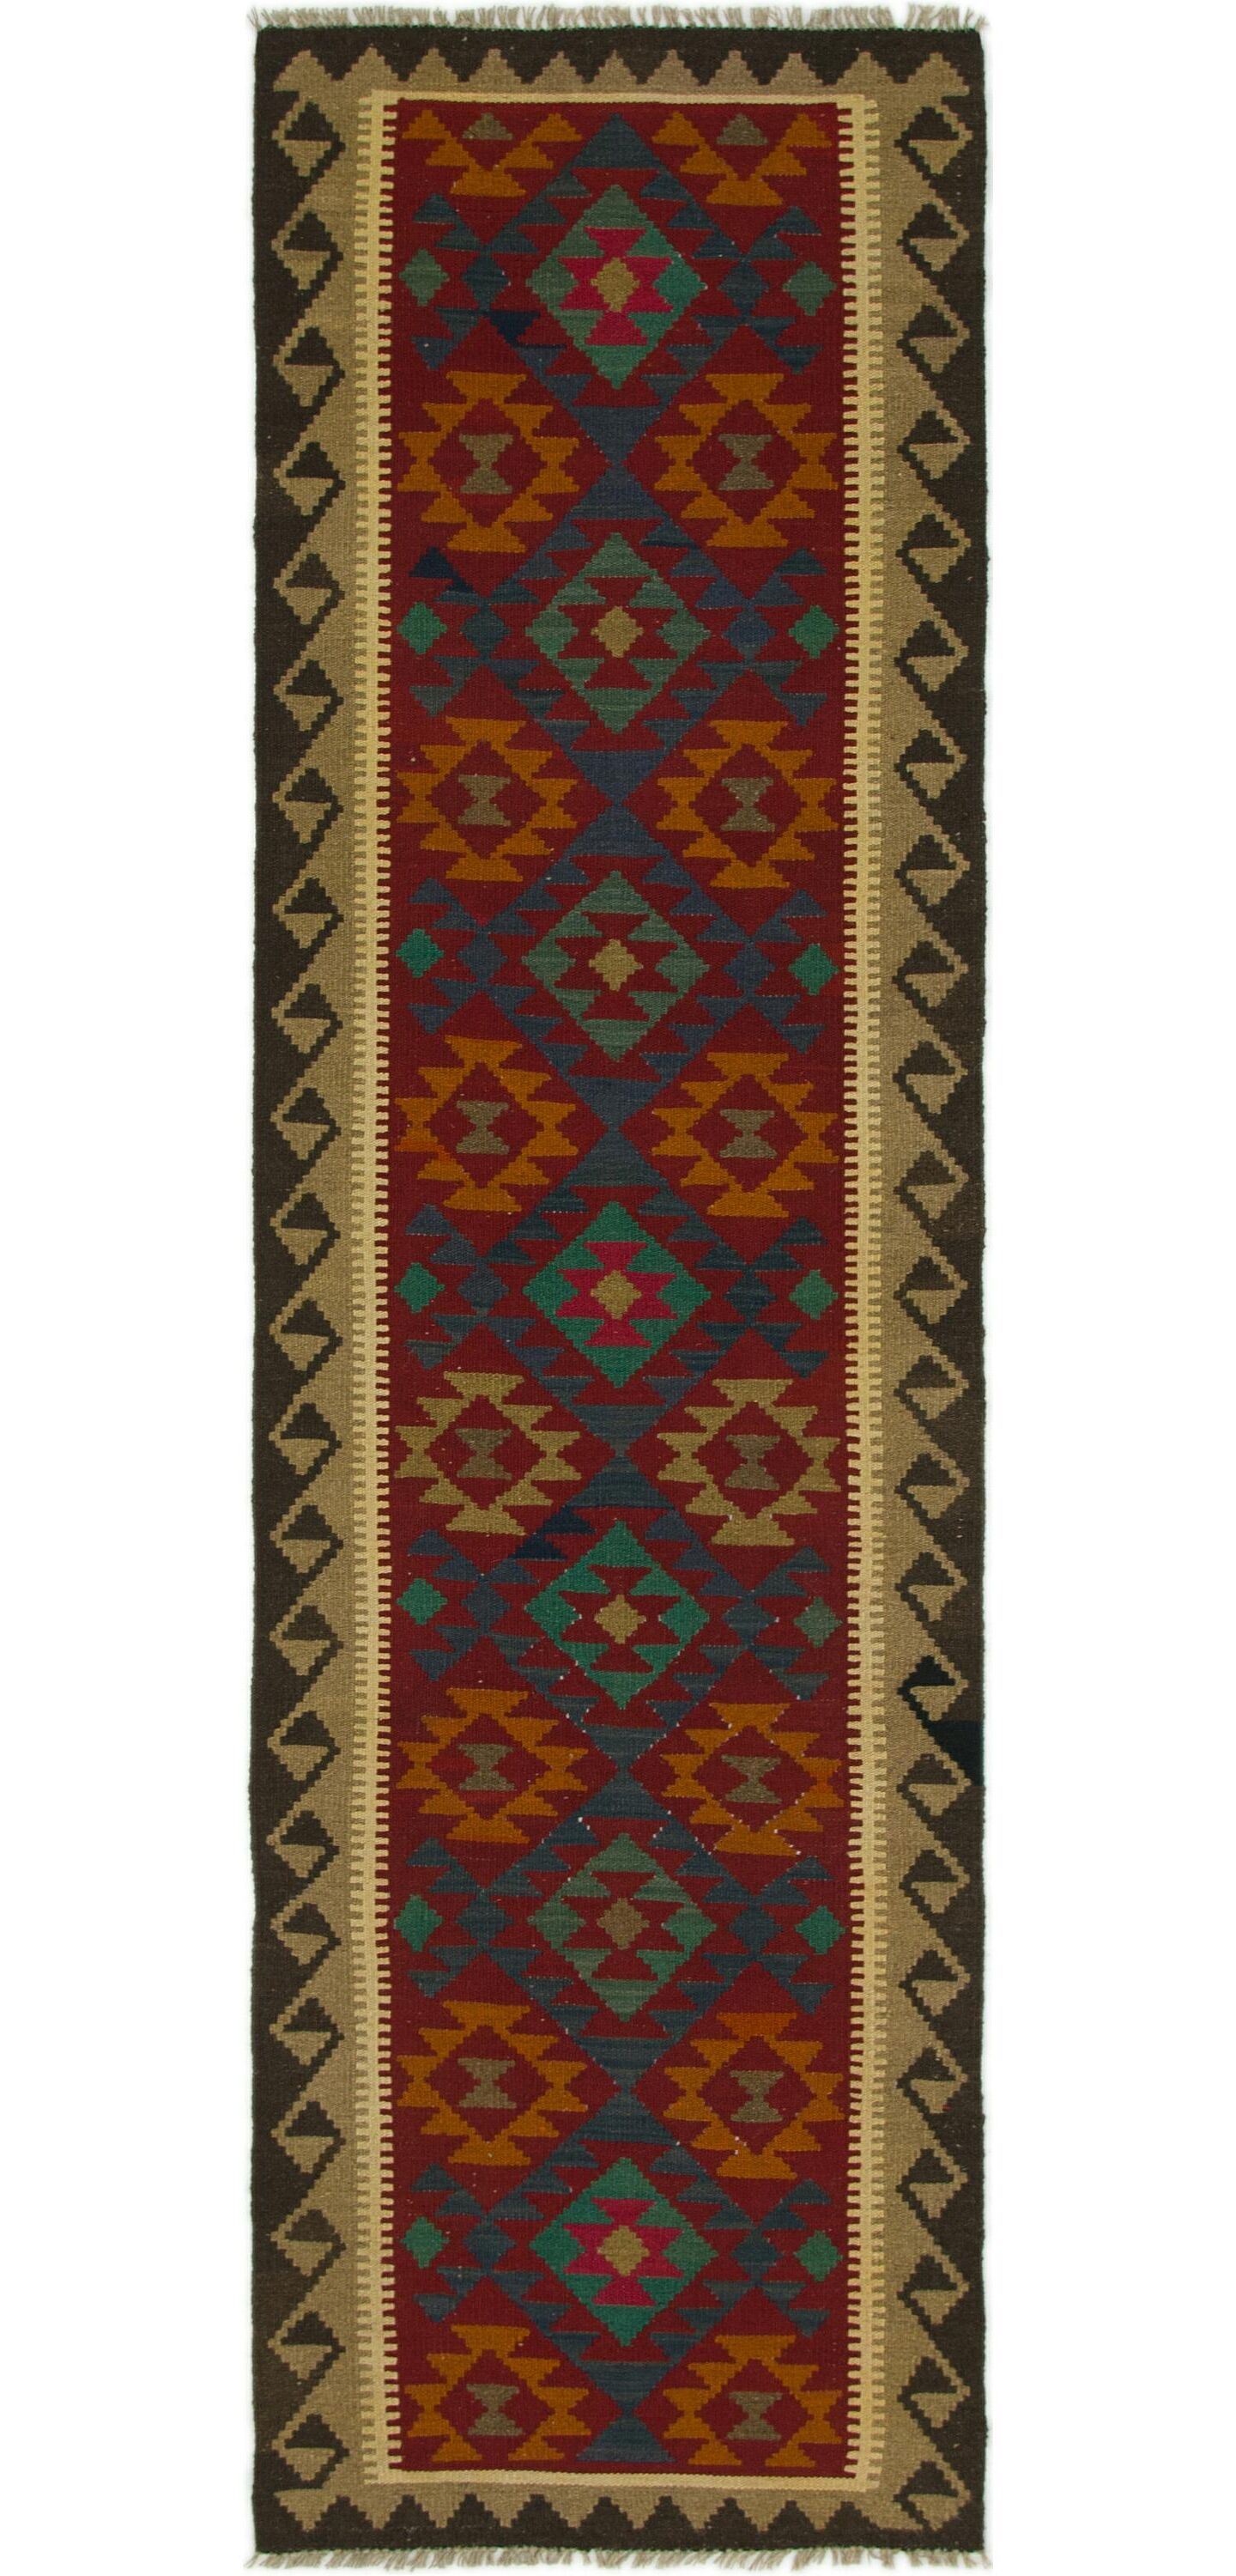 One-of-a-Kind Bedfordshire Kilim Maymana Hand-Knotted Wool 2'10